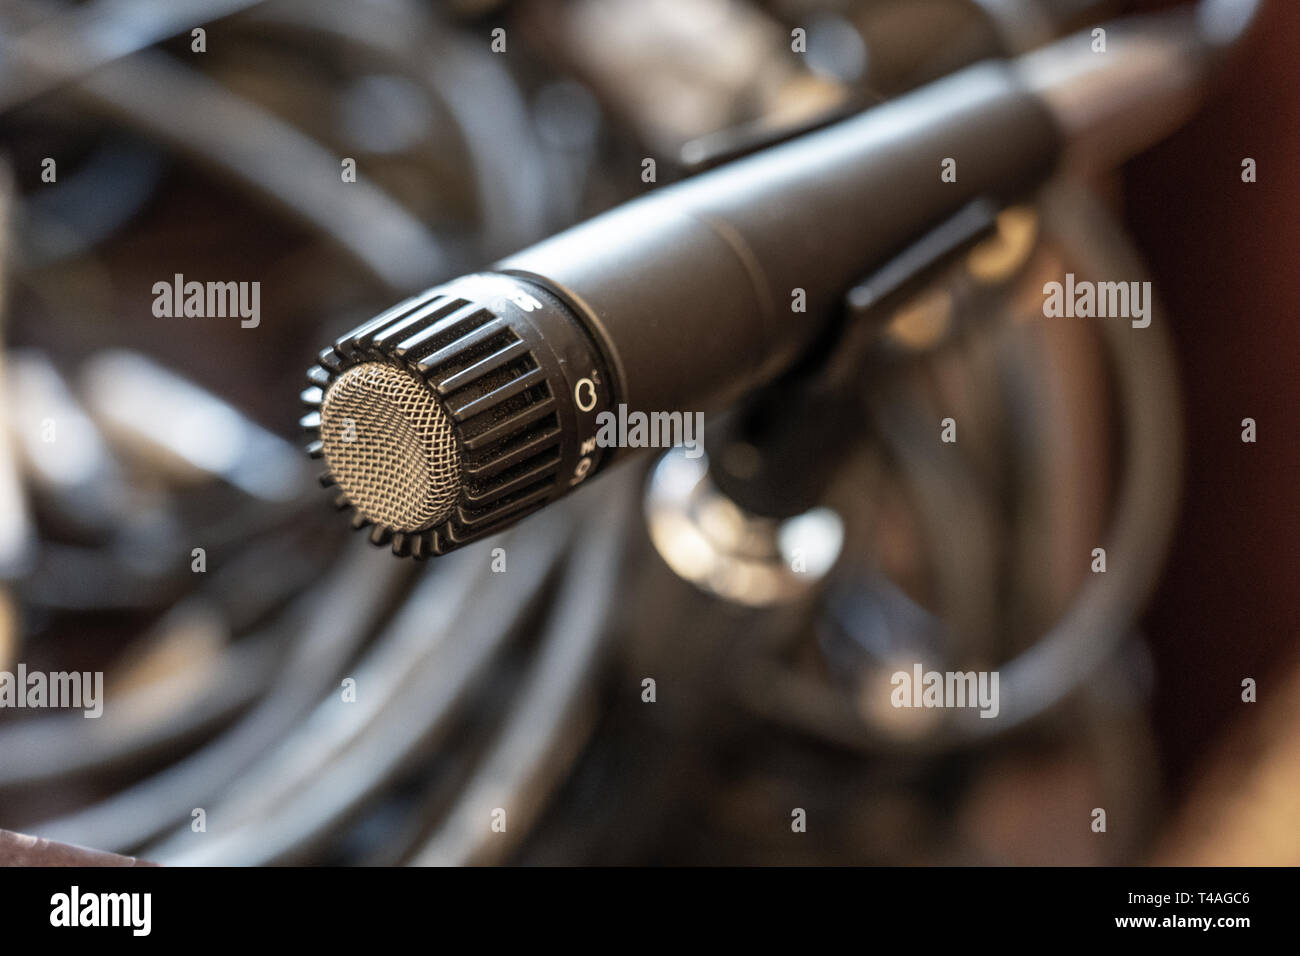 microphone with audio cables behind - Stock Image